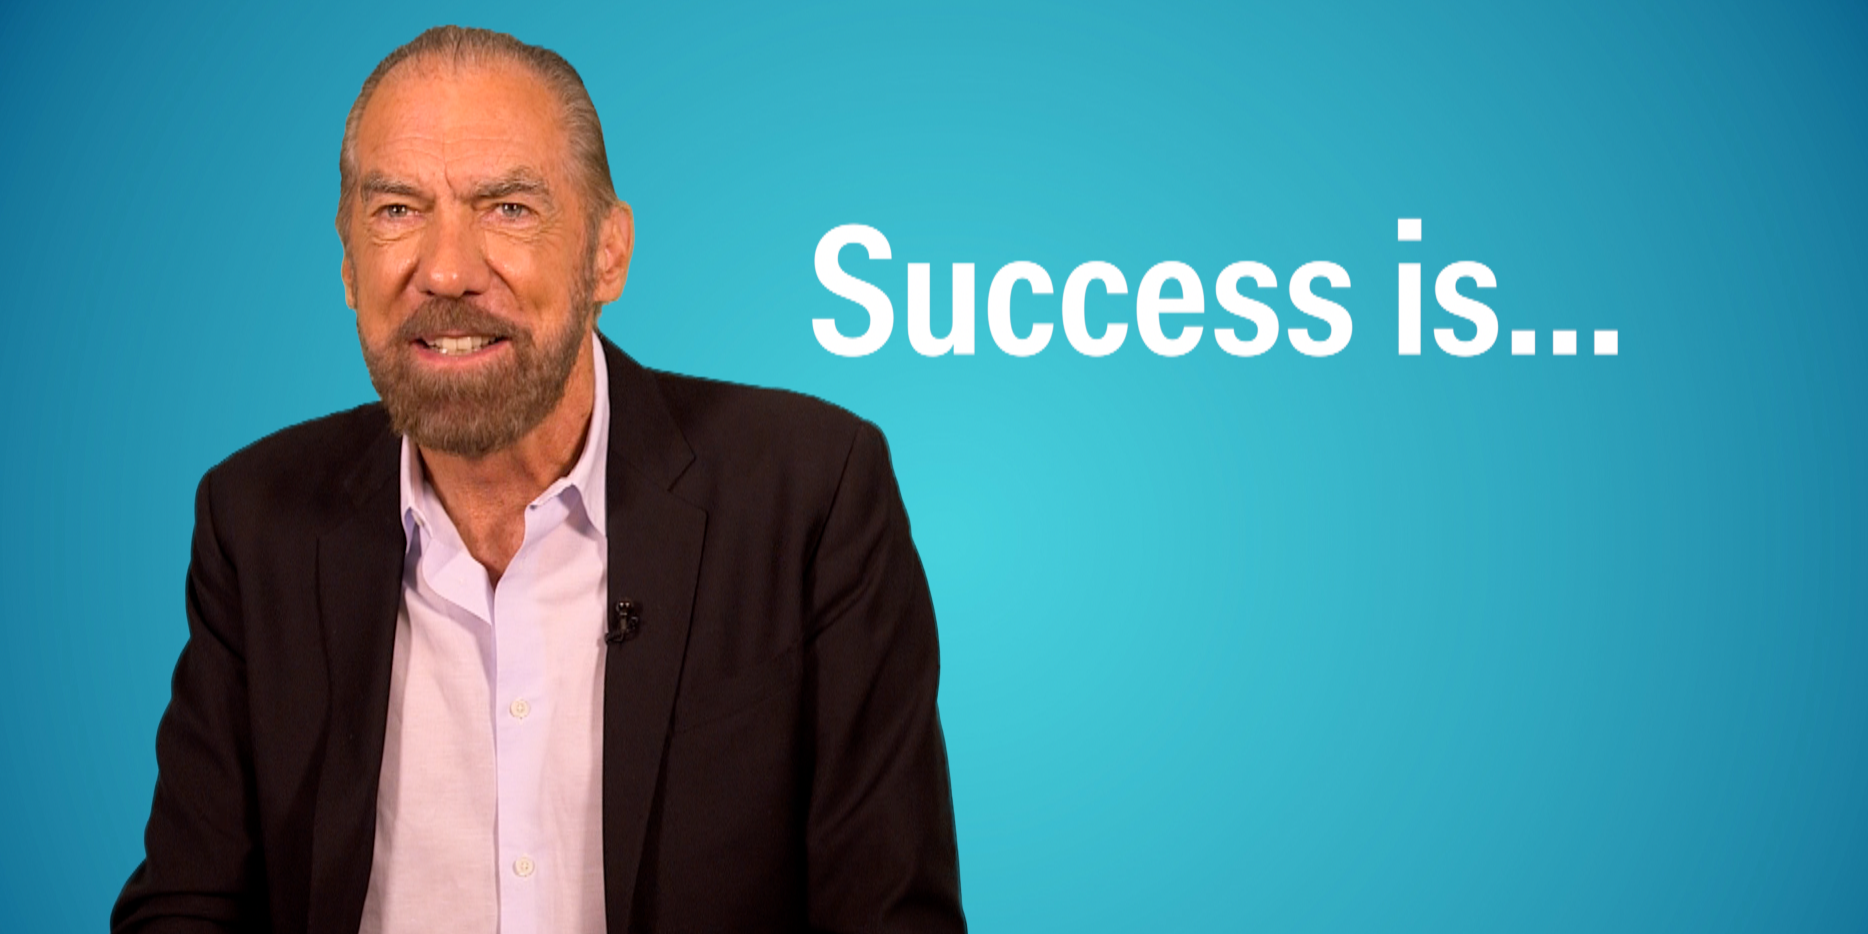 this billionaire s definition of success will surprise you career ·